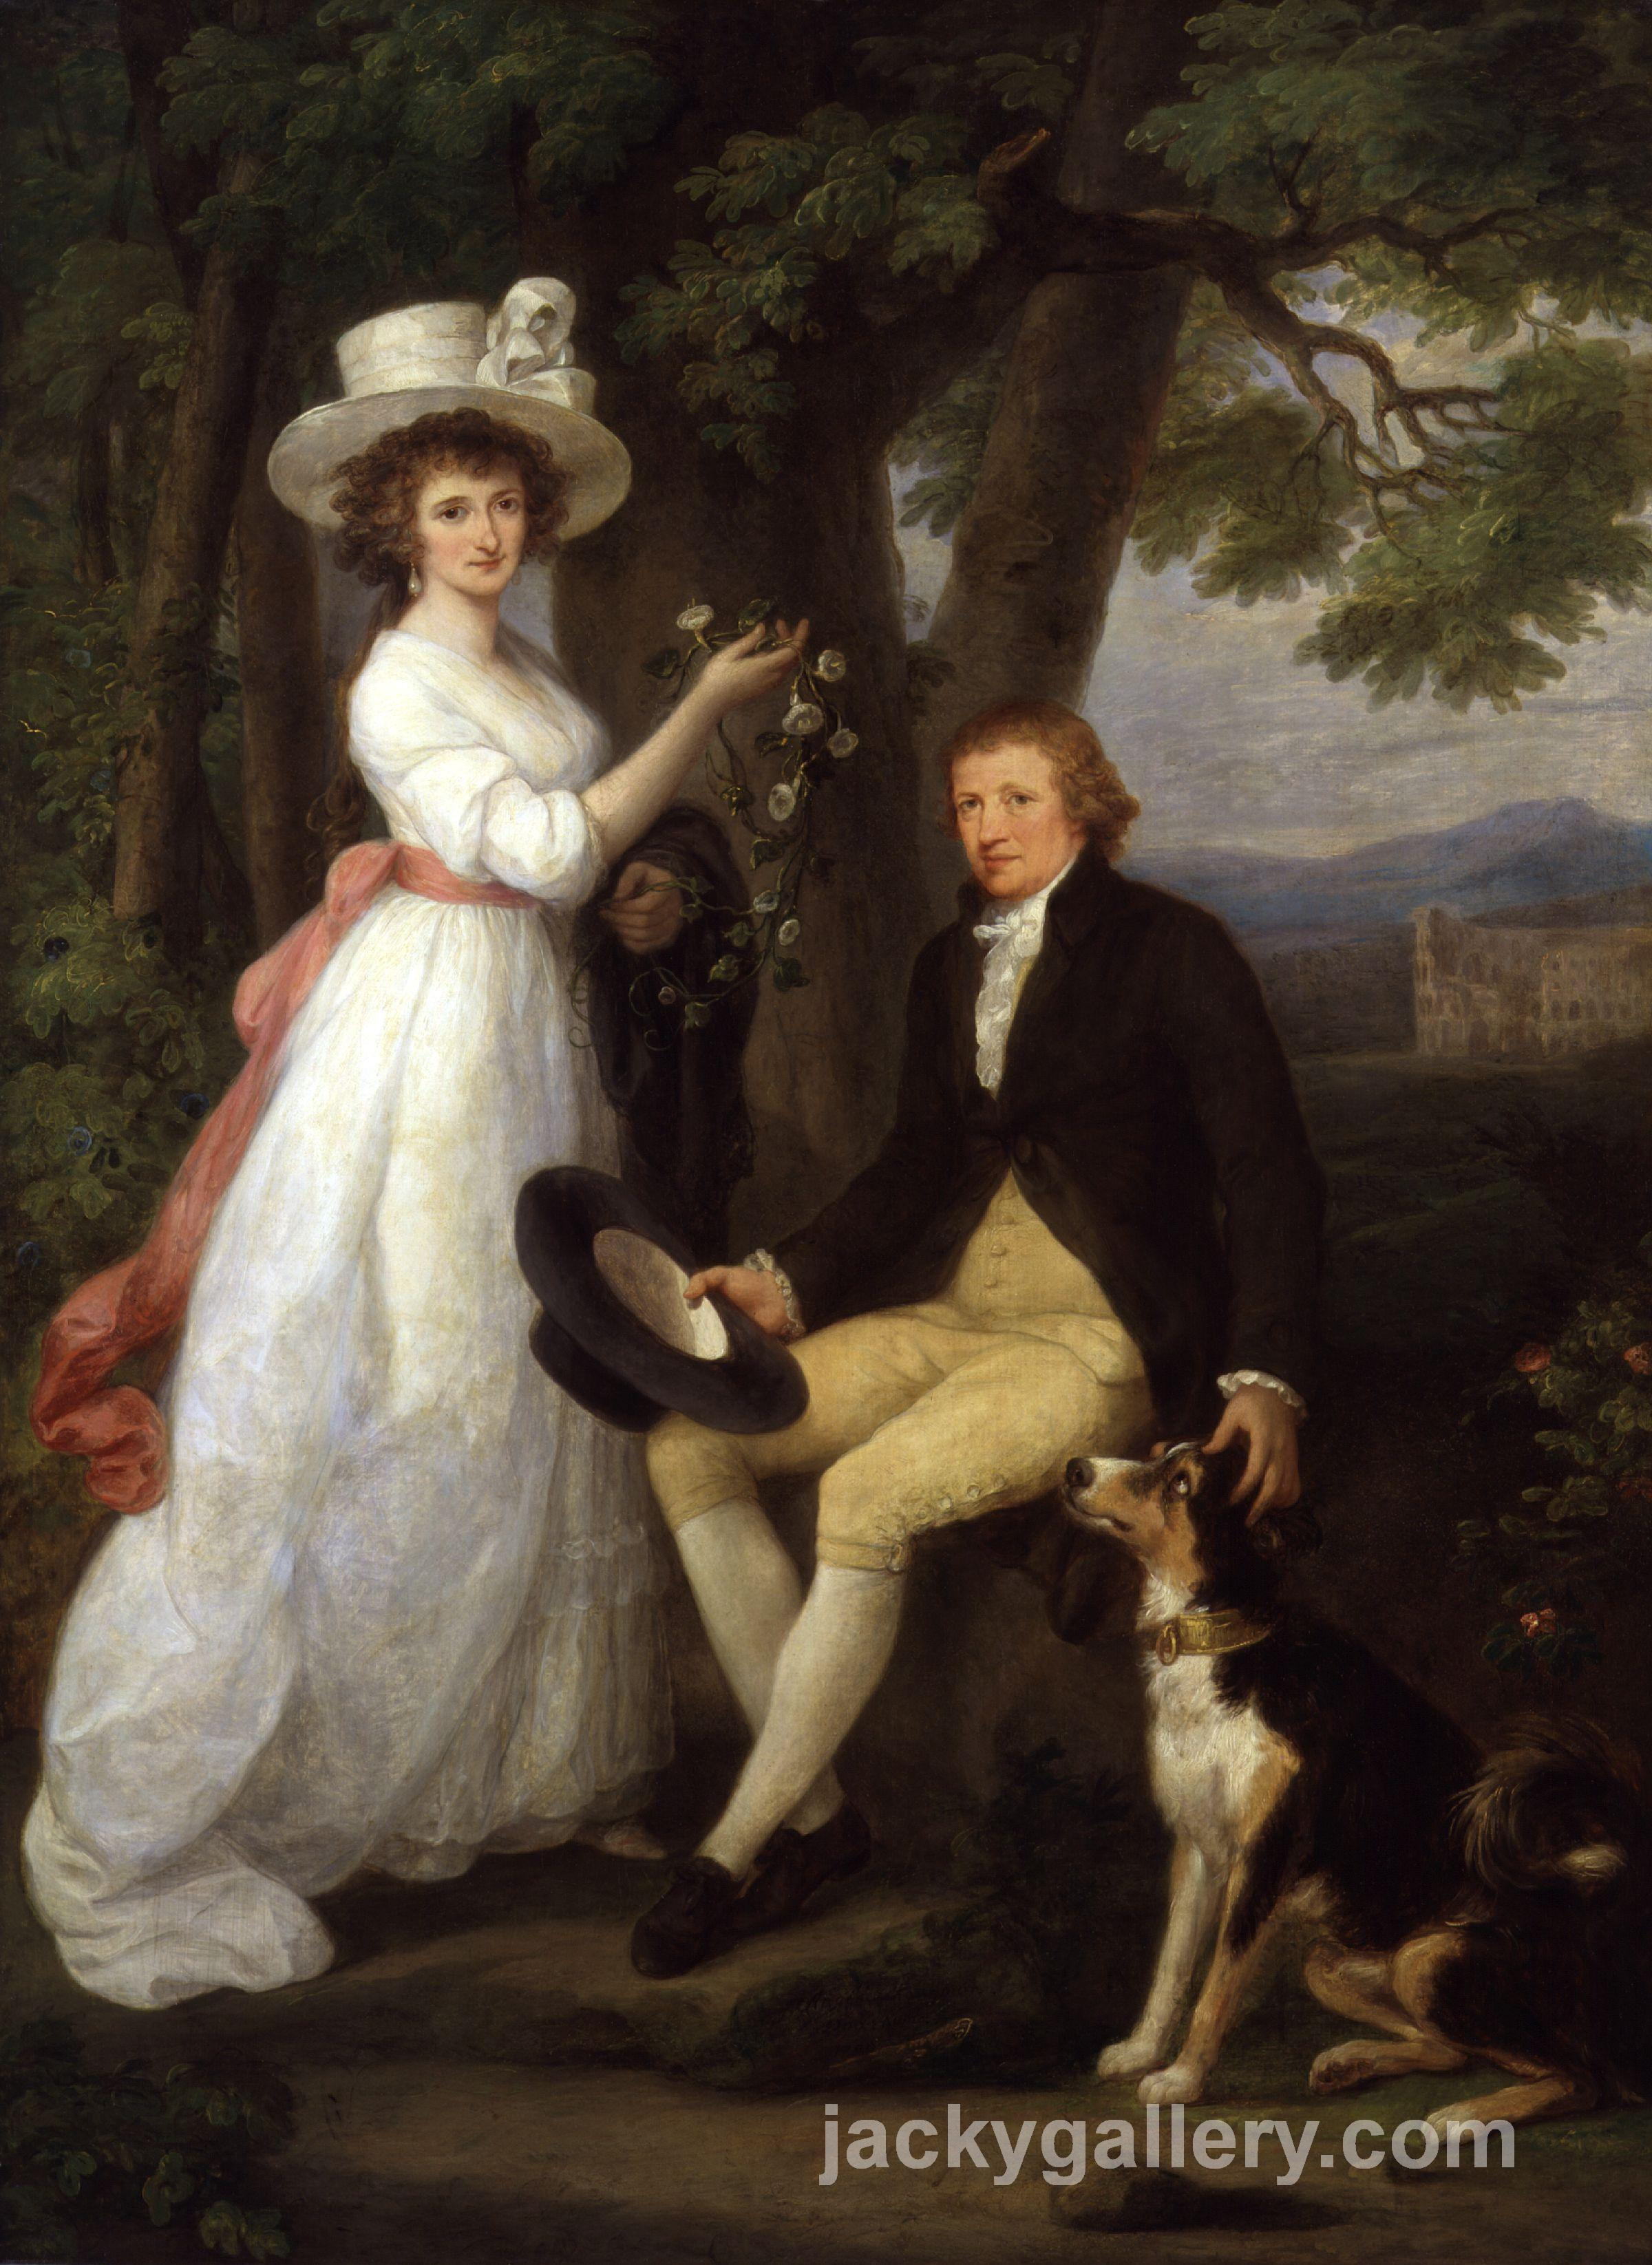 Anna Maria Jenkins and Thomas Jenkins, Angelica Kauffman painting